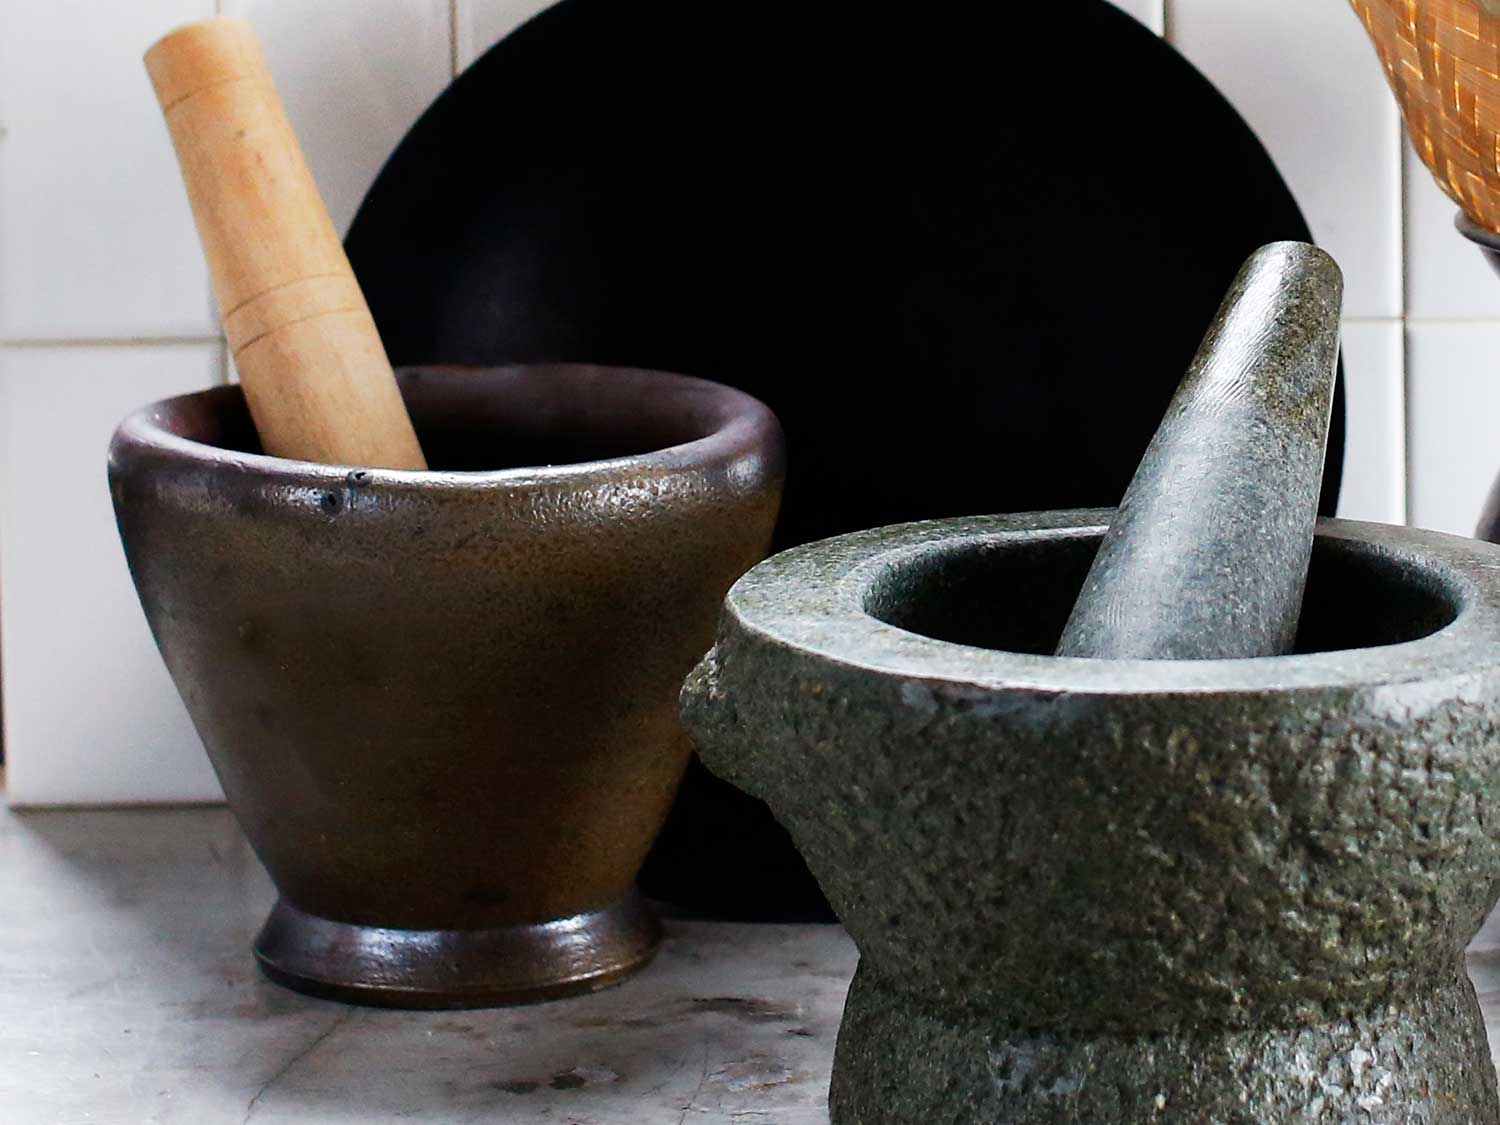 Wood & Clay Mortar and Pestle